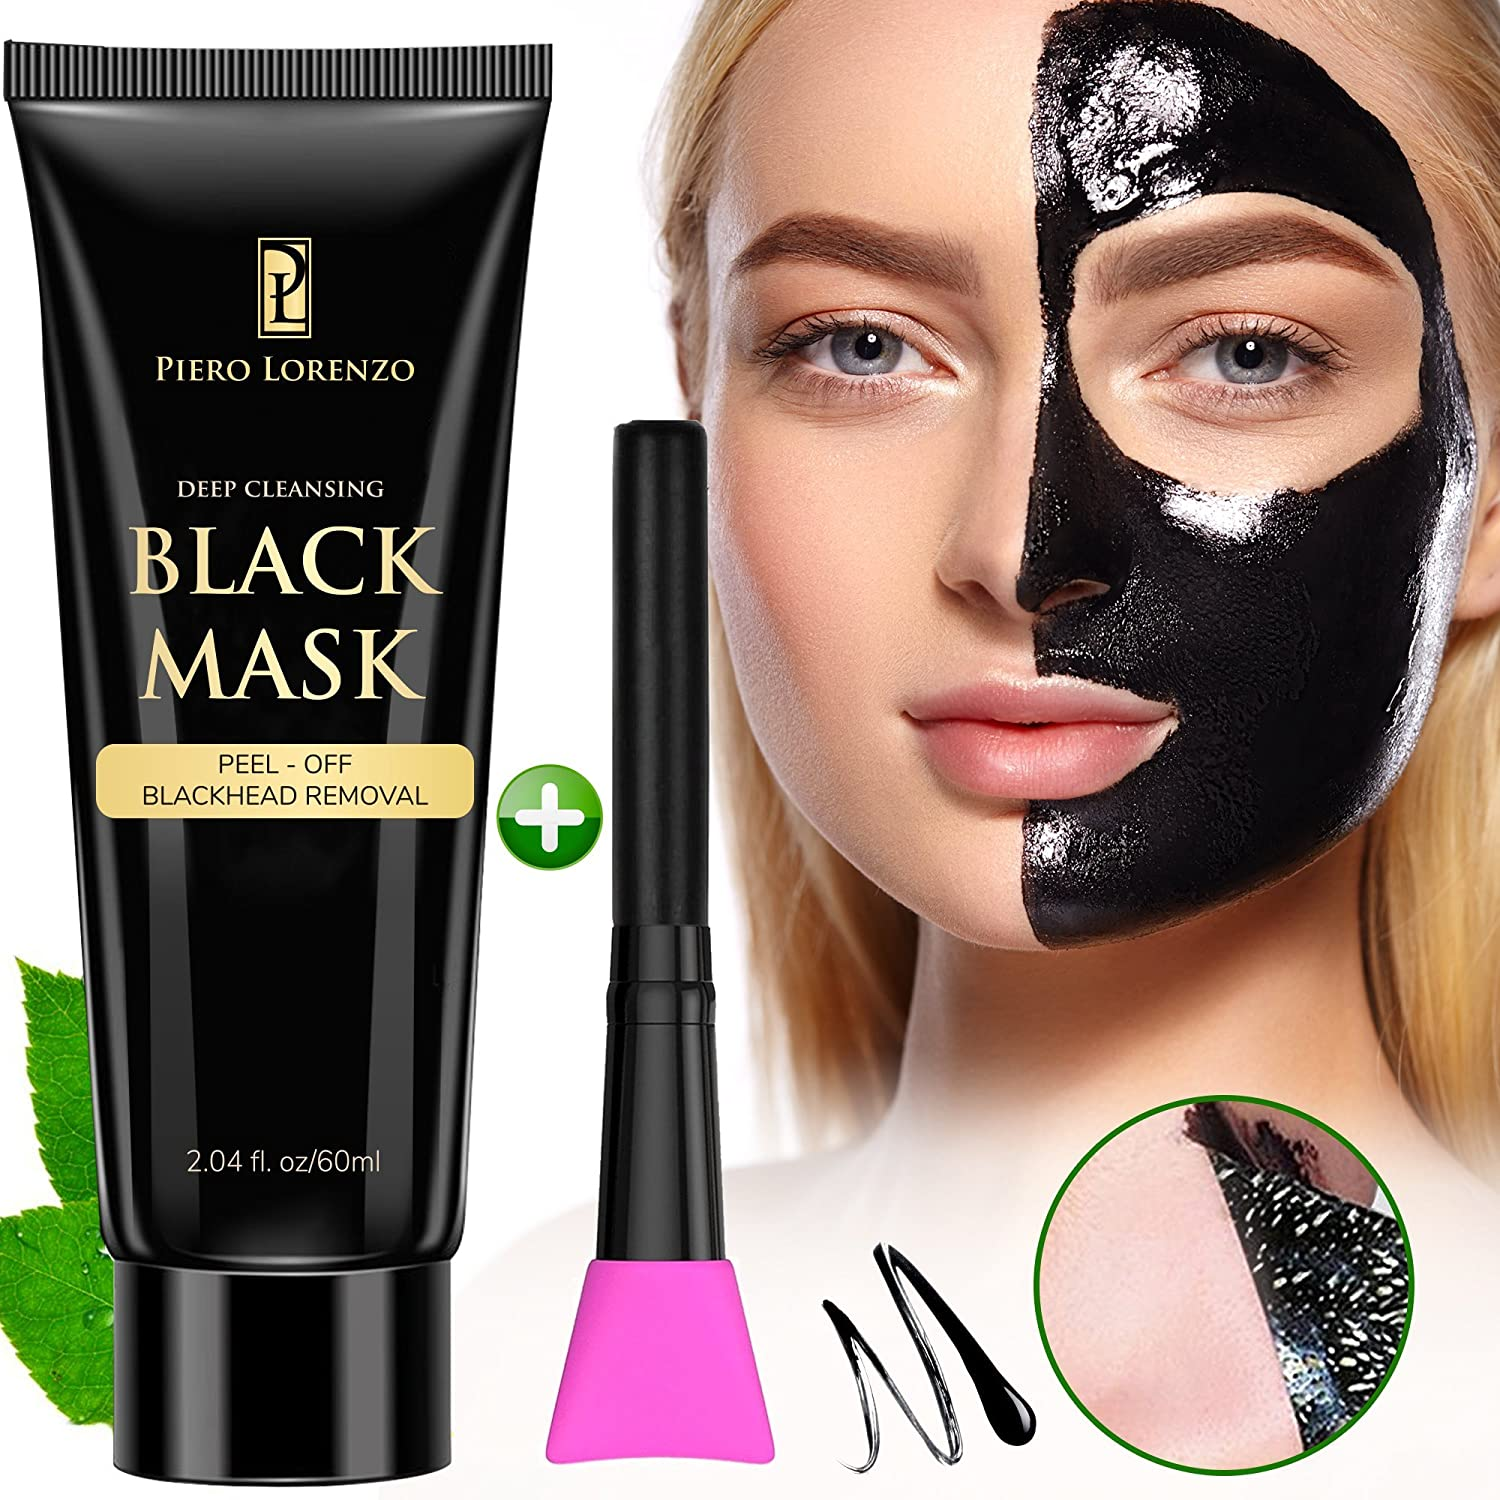 Blackhead Remover Black Mask Cleaner - Purifying Quality Black Peel off Charcoal Mask Best Facial Mask (1 Pack with Brush) Piero Lorenzo